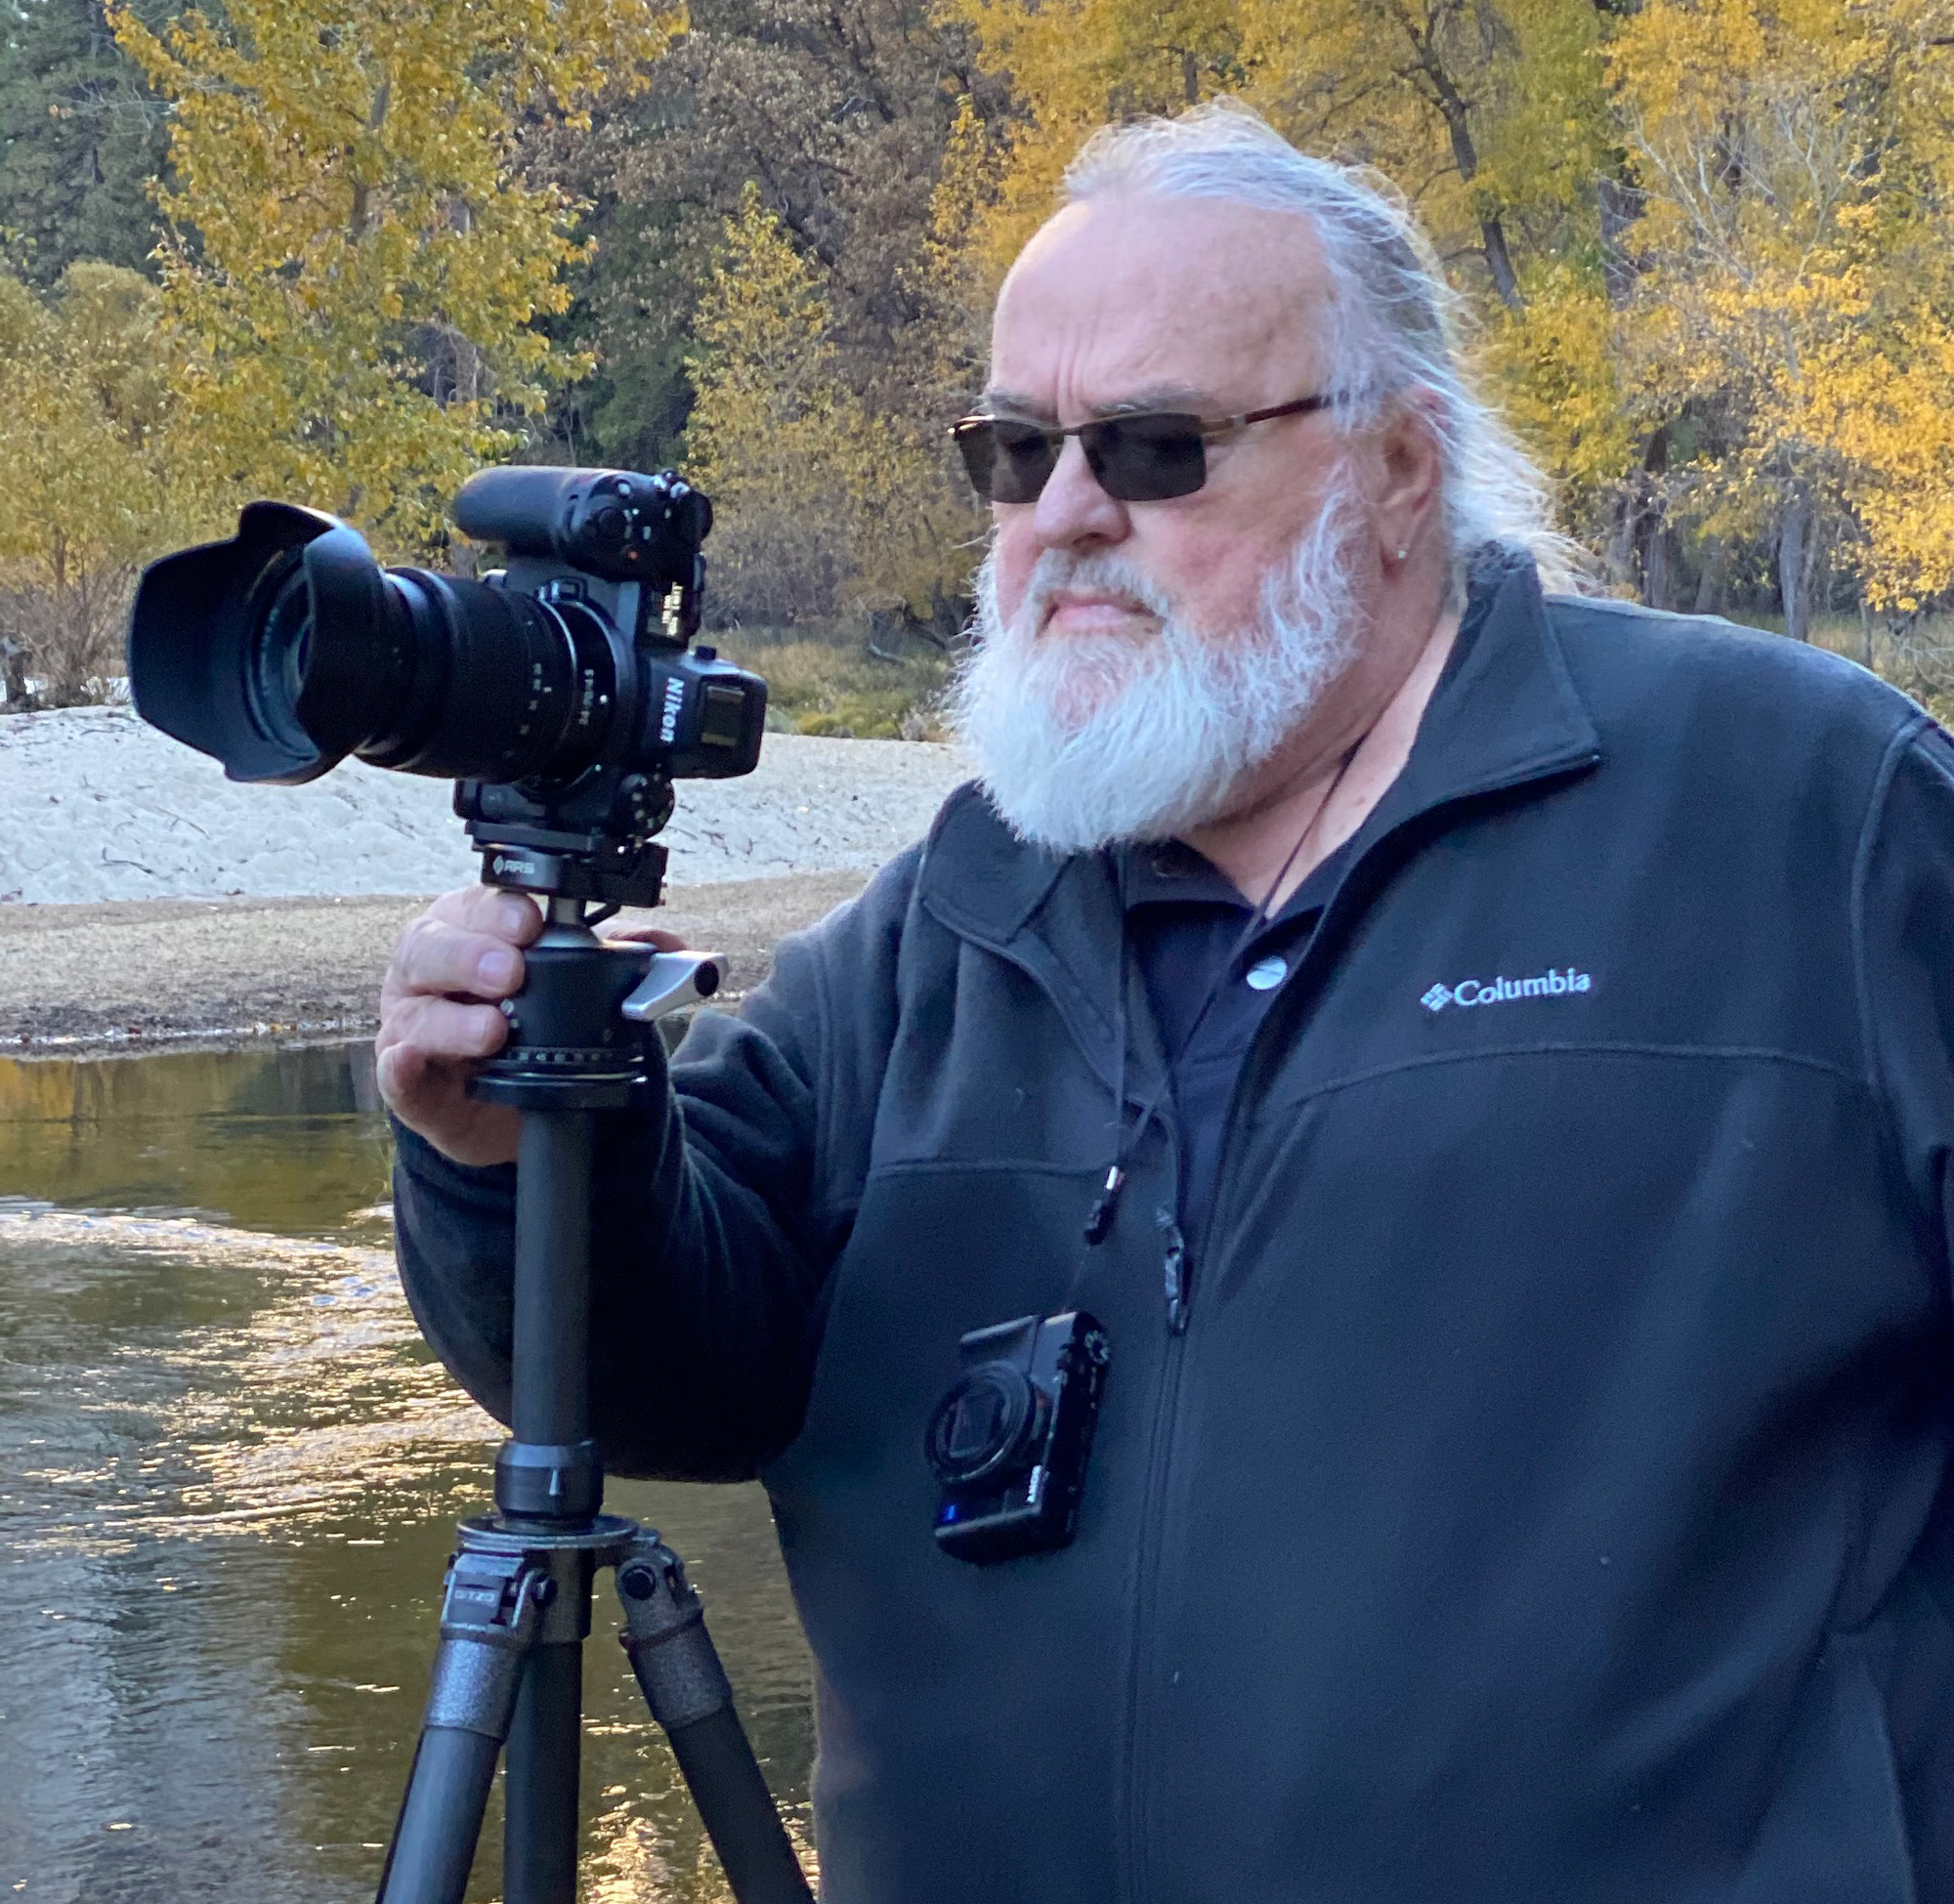 Jeff Schewe with his Sony RX100 vii that is always hanging from his neck